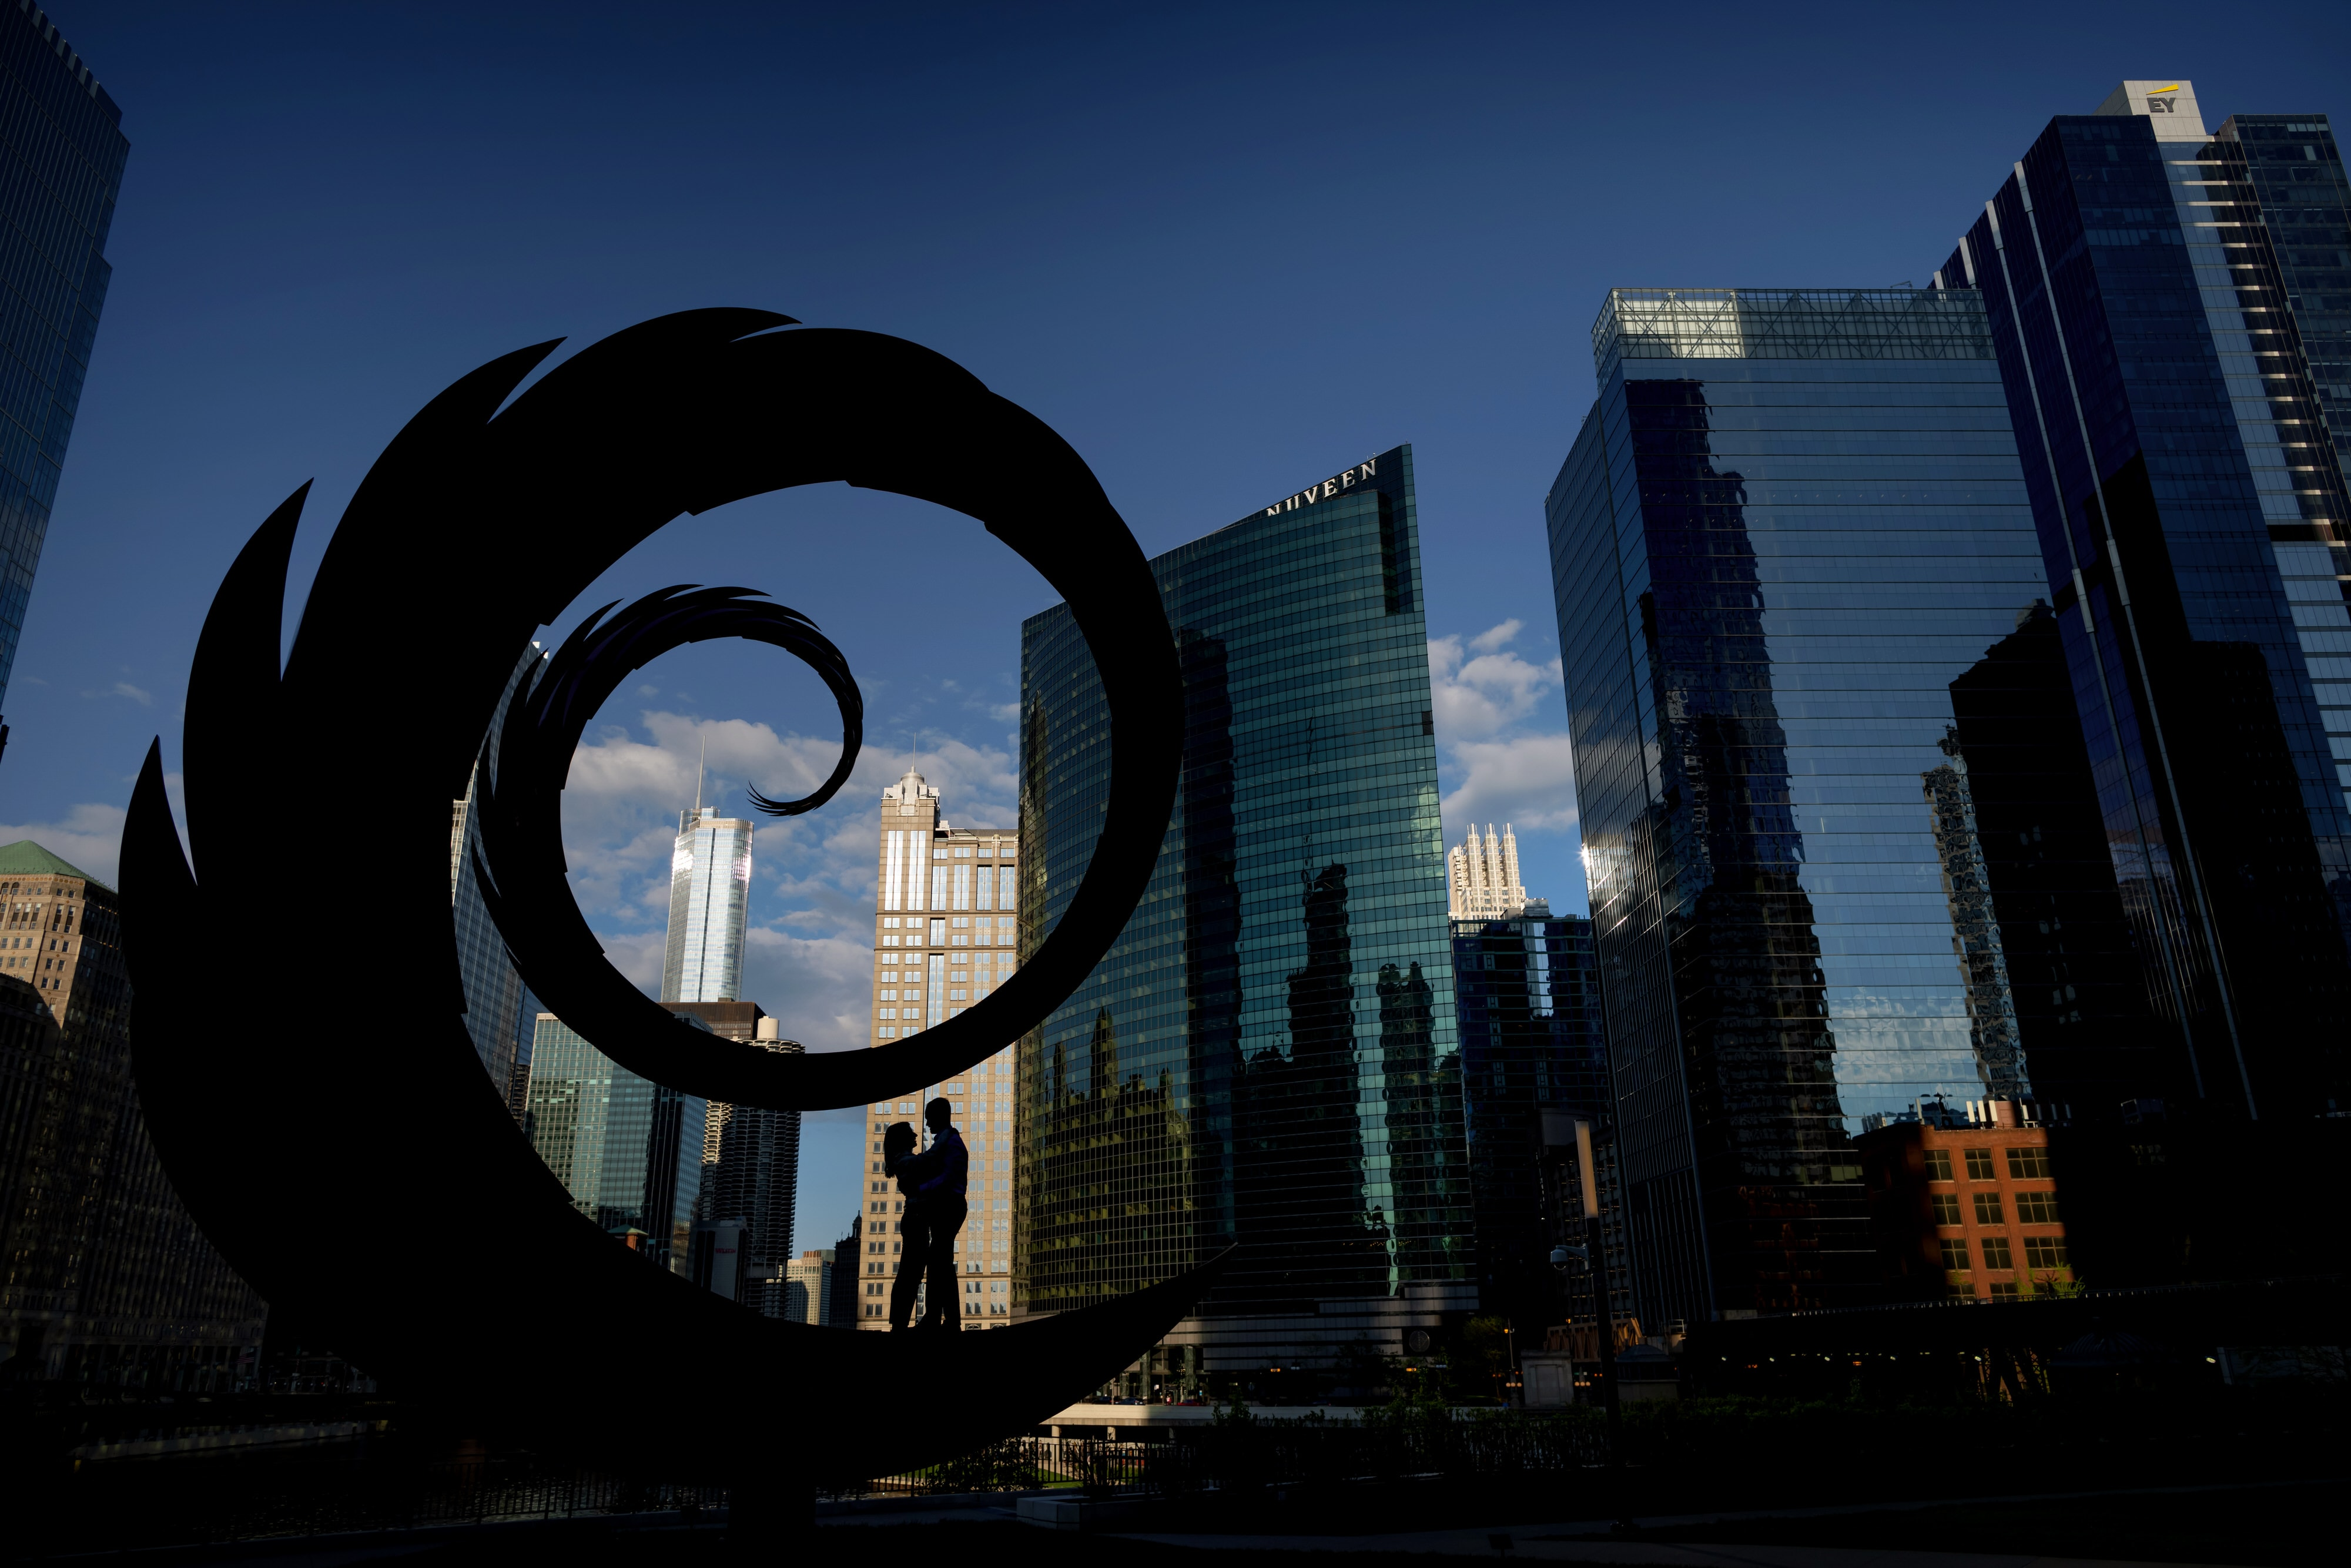 Couple is silhouetted against the Chicago skyline while standing on a sculpture at Wolf Point near Gibson's Italia and the Chicago River